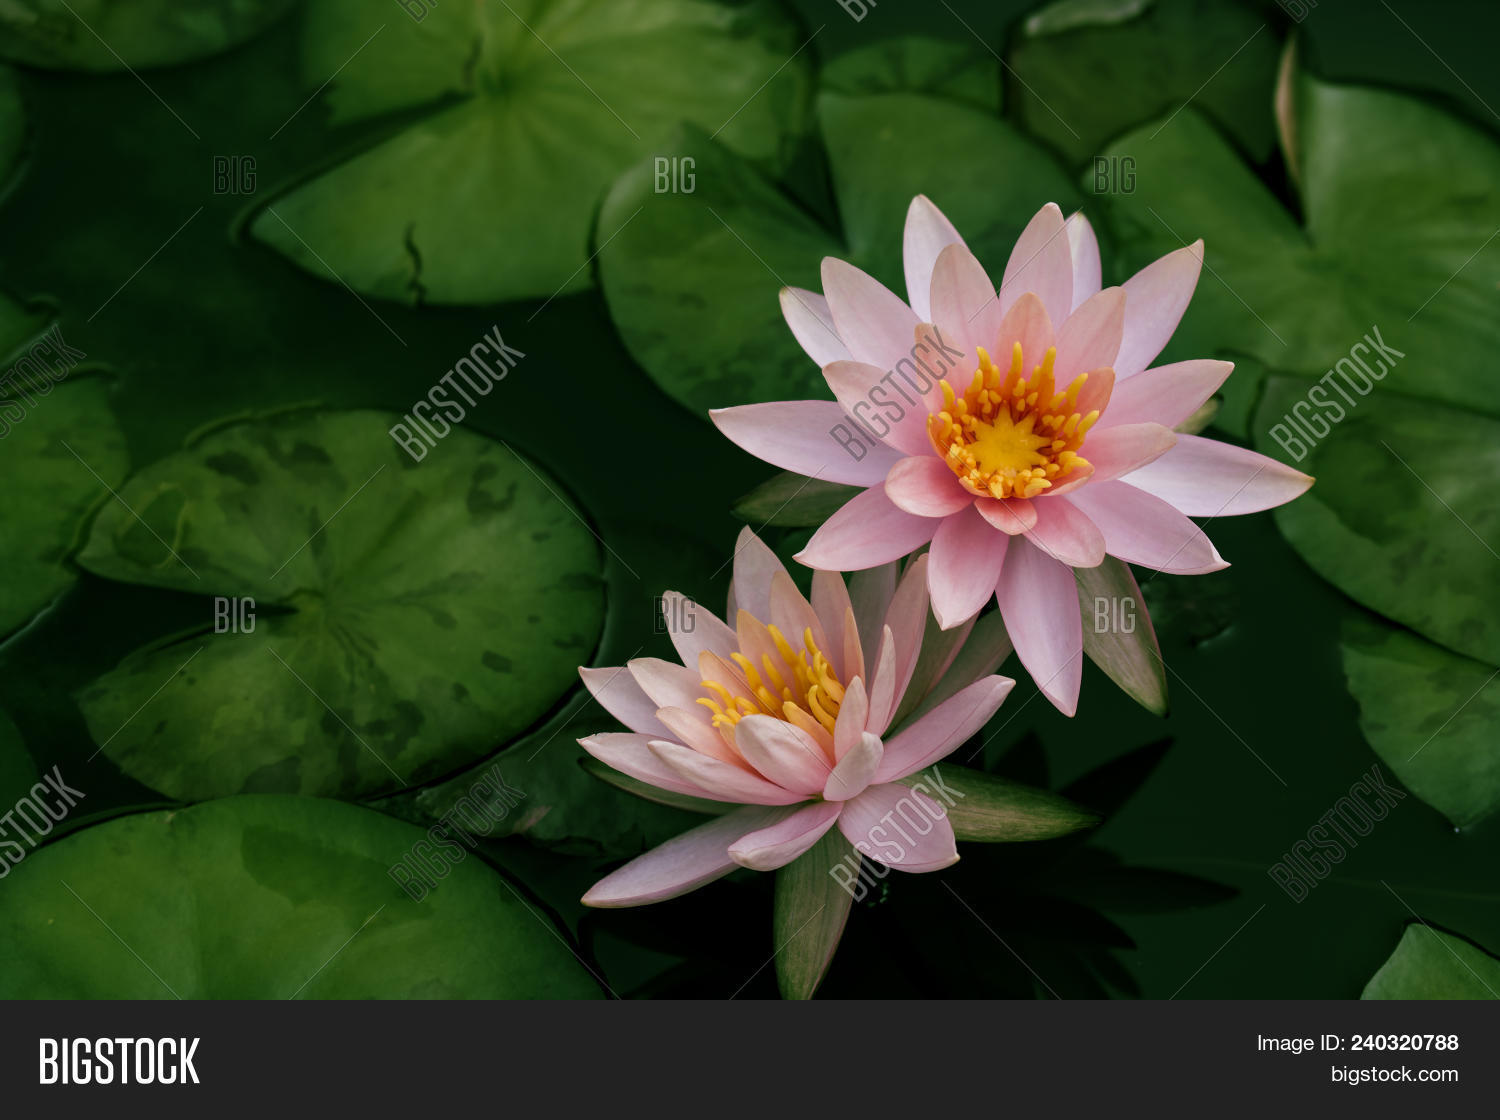 Beautiful lotus flower image photo free trial bigstock beautiful lotus flower or water lily in a pond with green leaves in the background izmirmasajfo